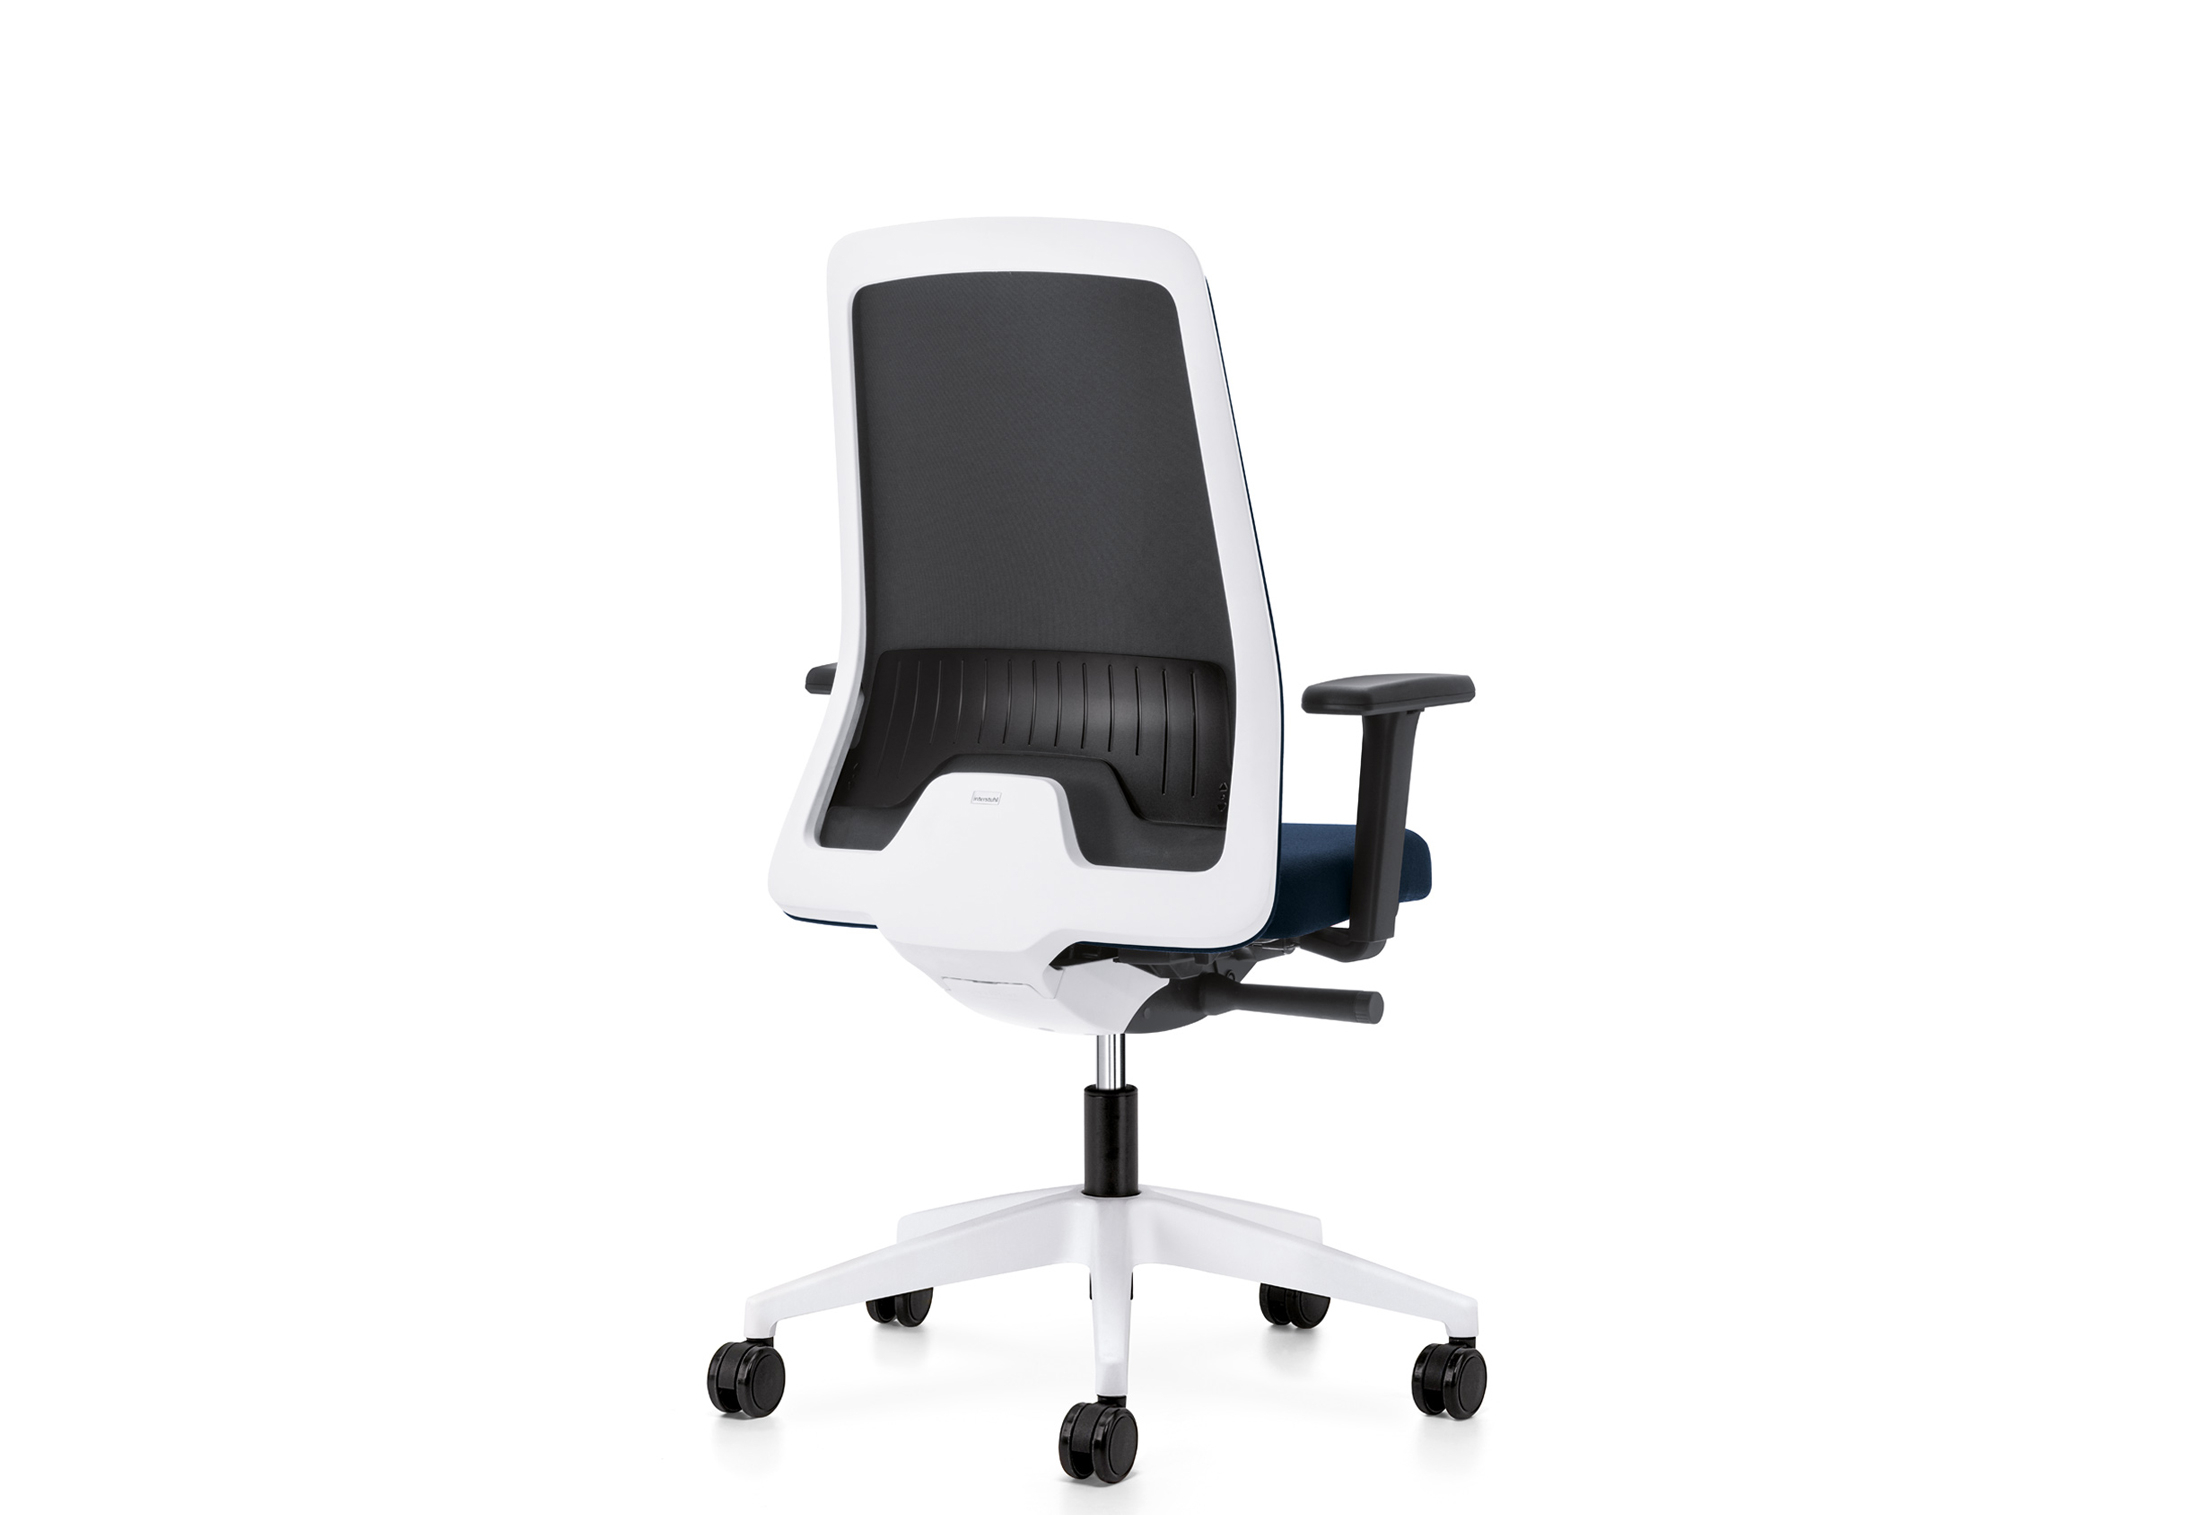 Everyis1 Chillback Swivel Chairinterstuhl | Stylepark Within Chill Swivel Chairs With Metal Base (Image 10 of 20)